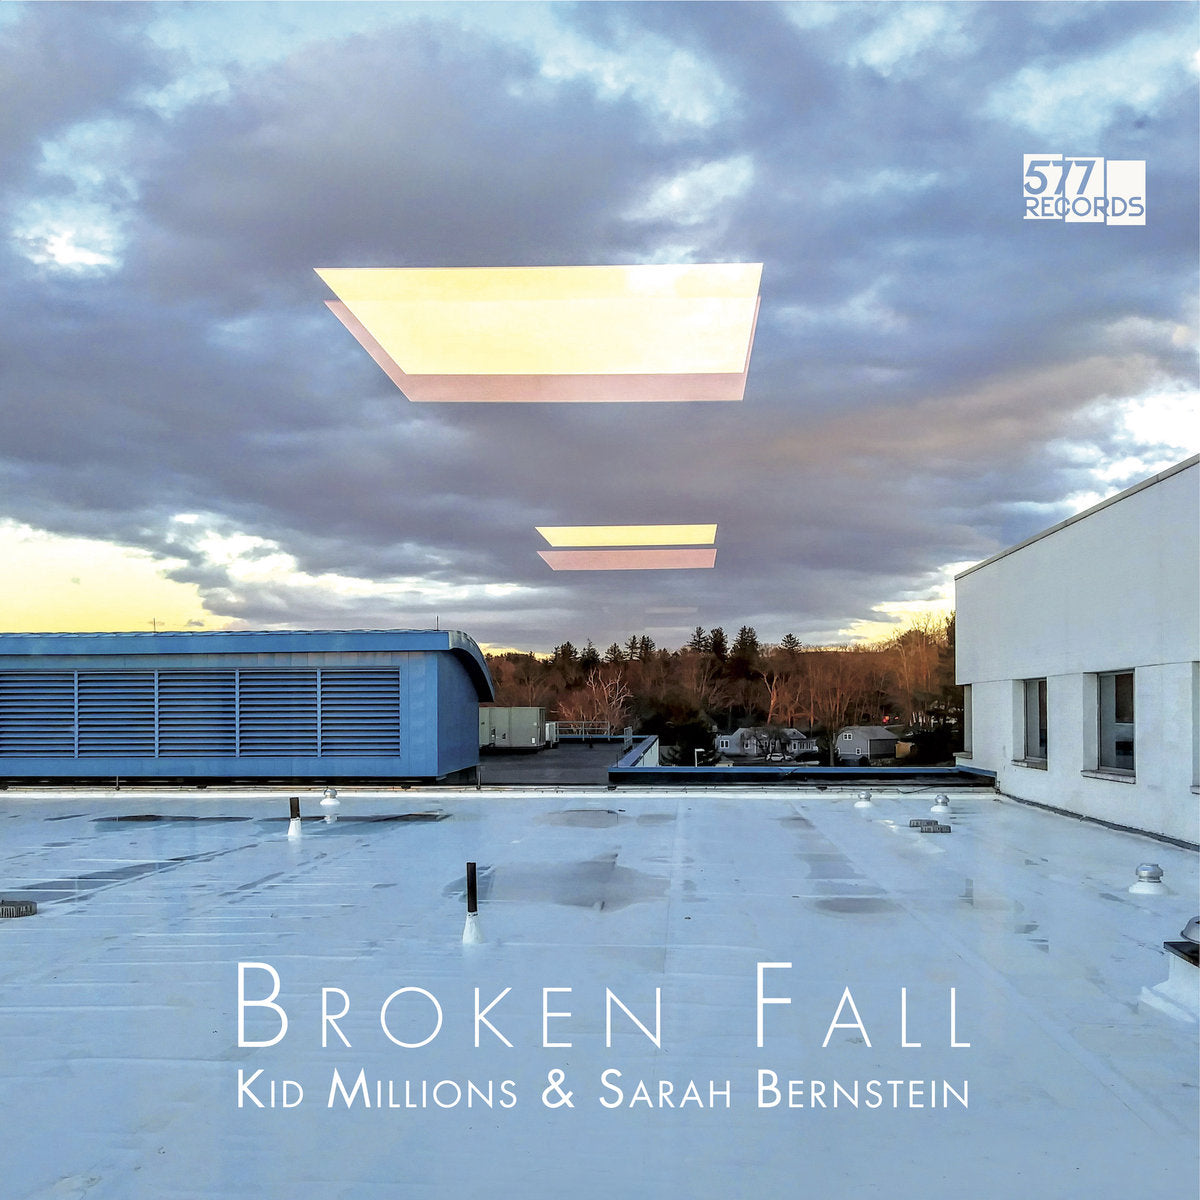 Kid Millions & Sarah Bernstein - Broken Fall LP